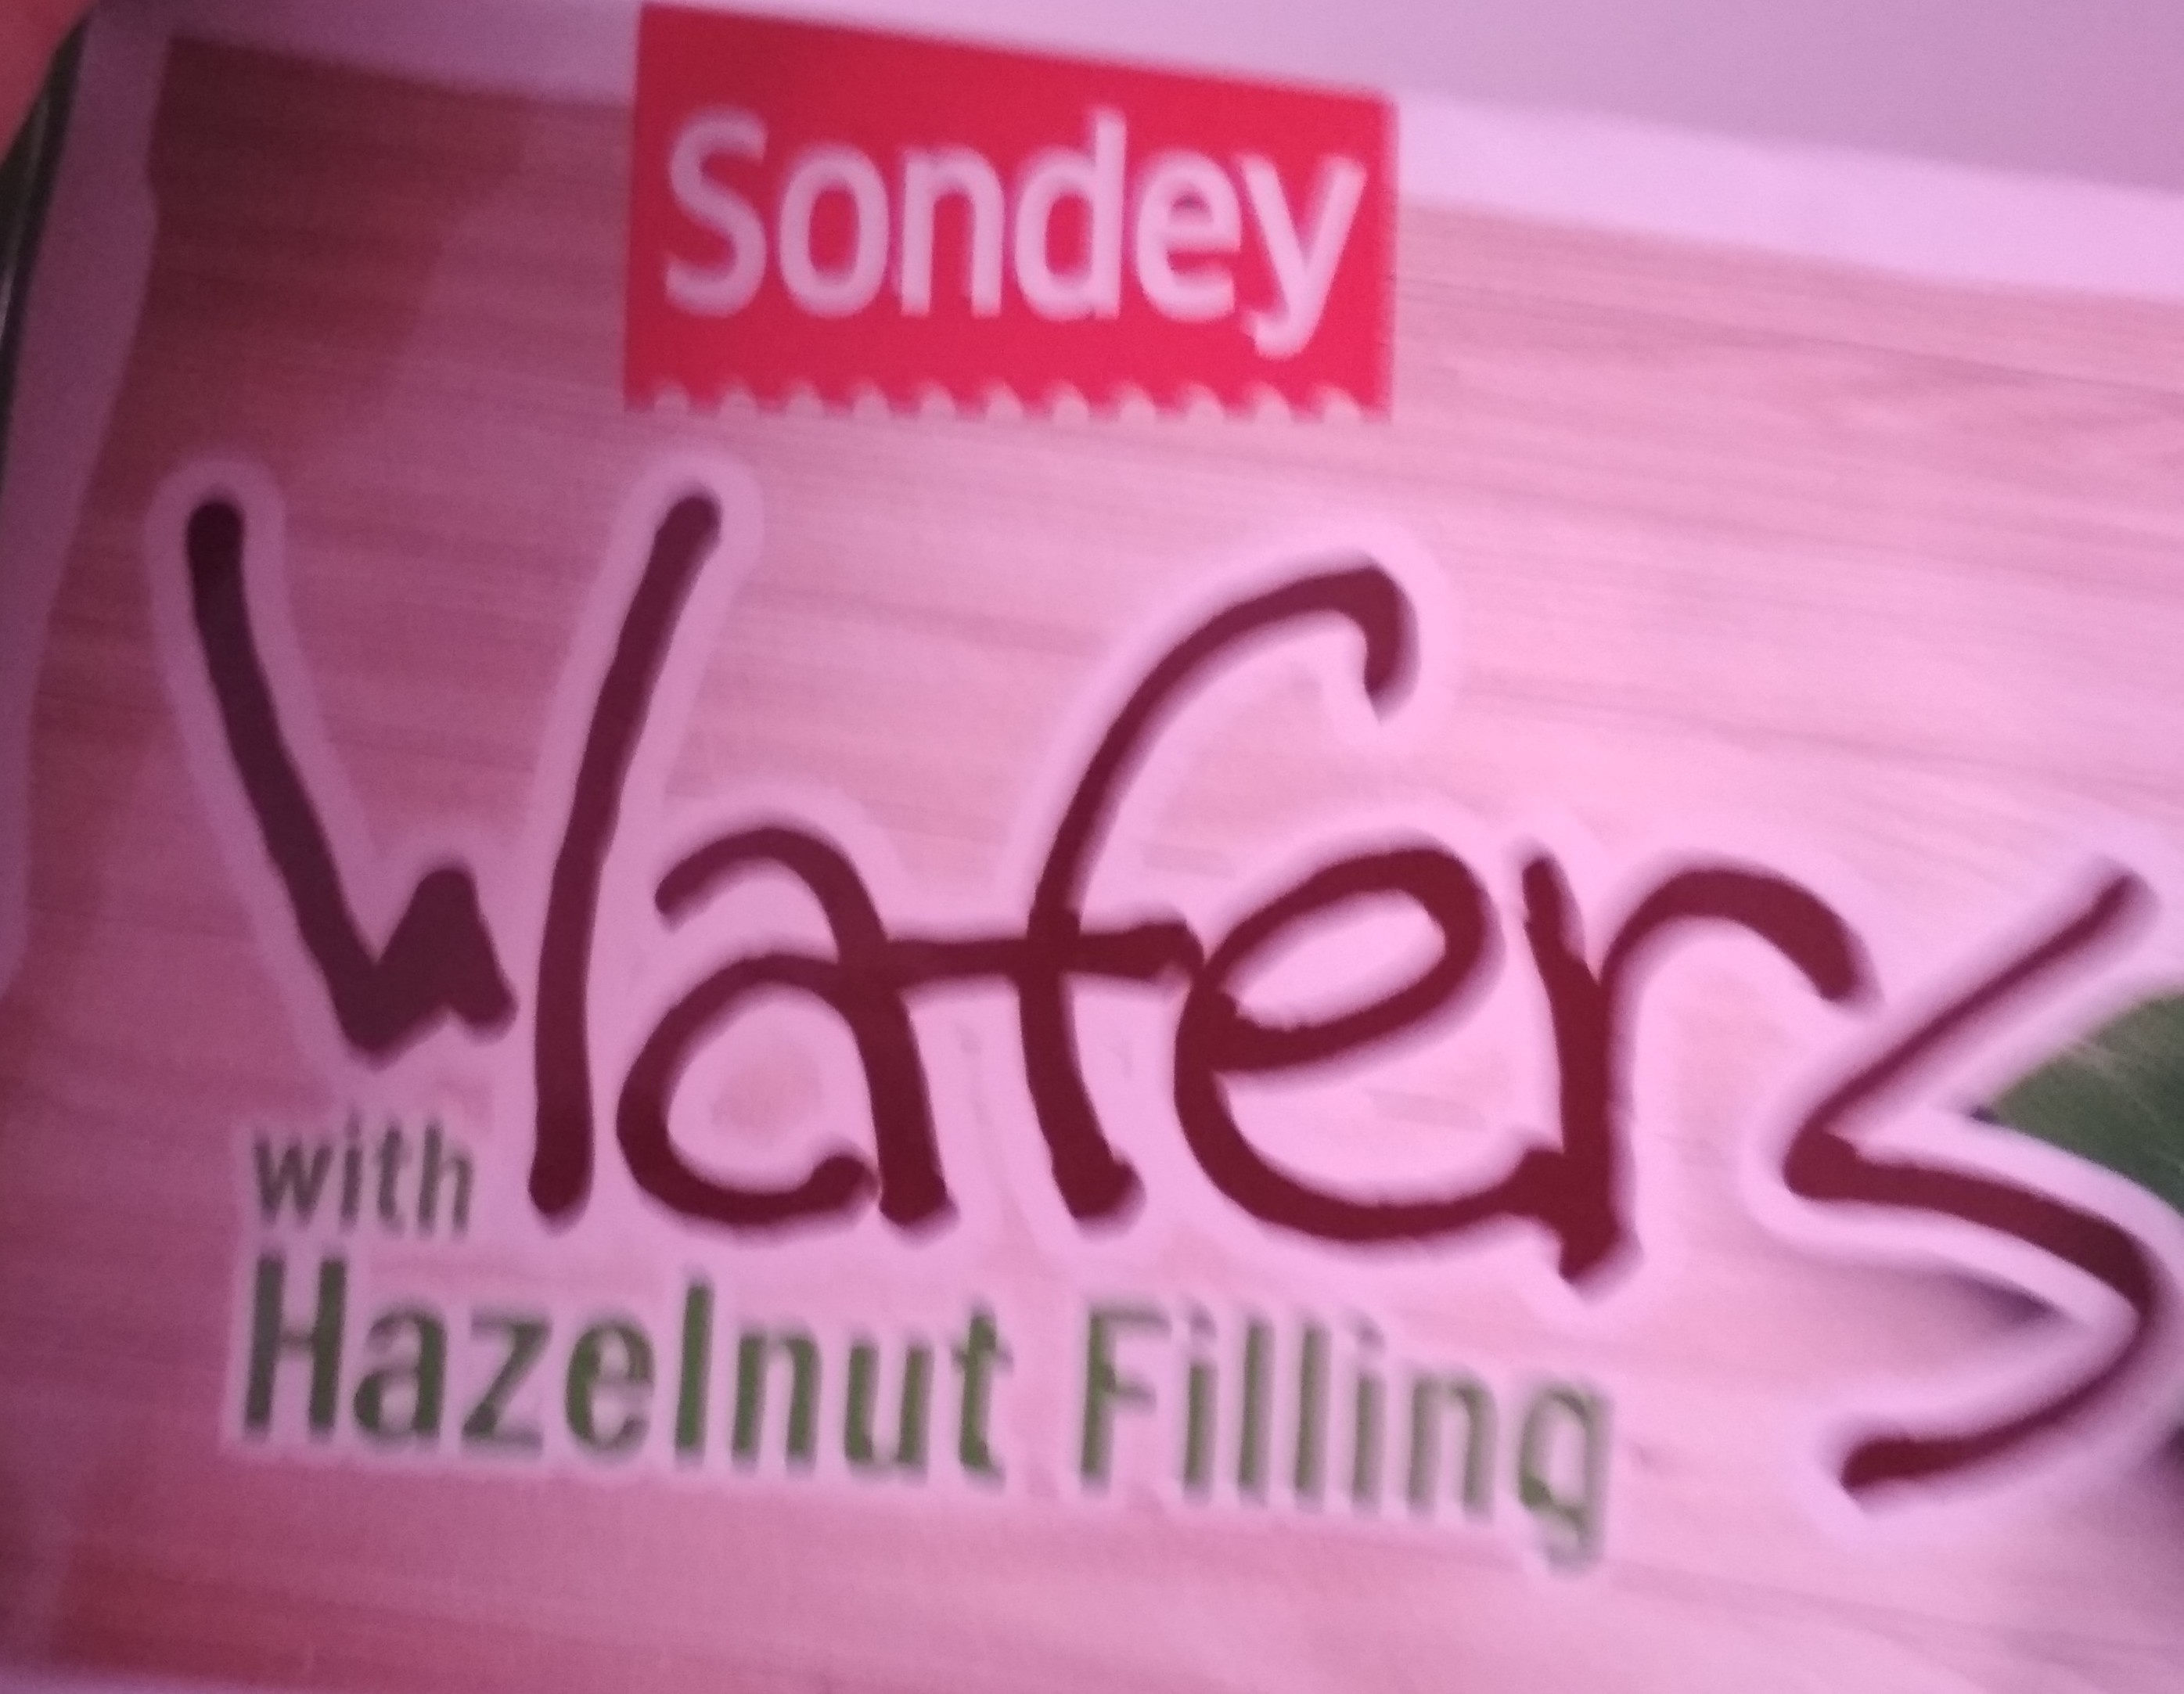 wafers - Product - pt